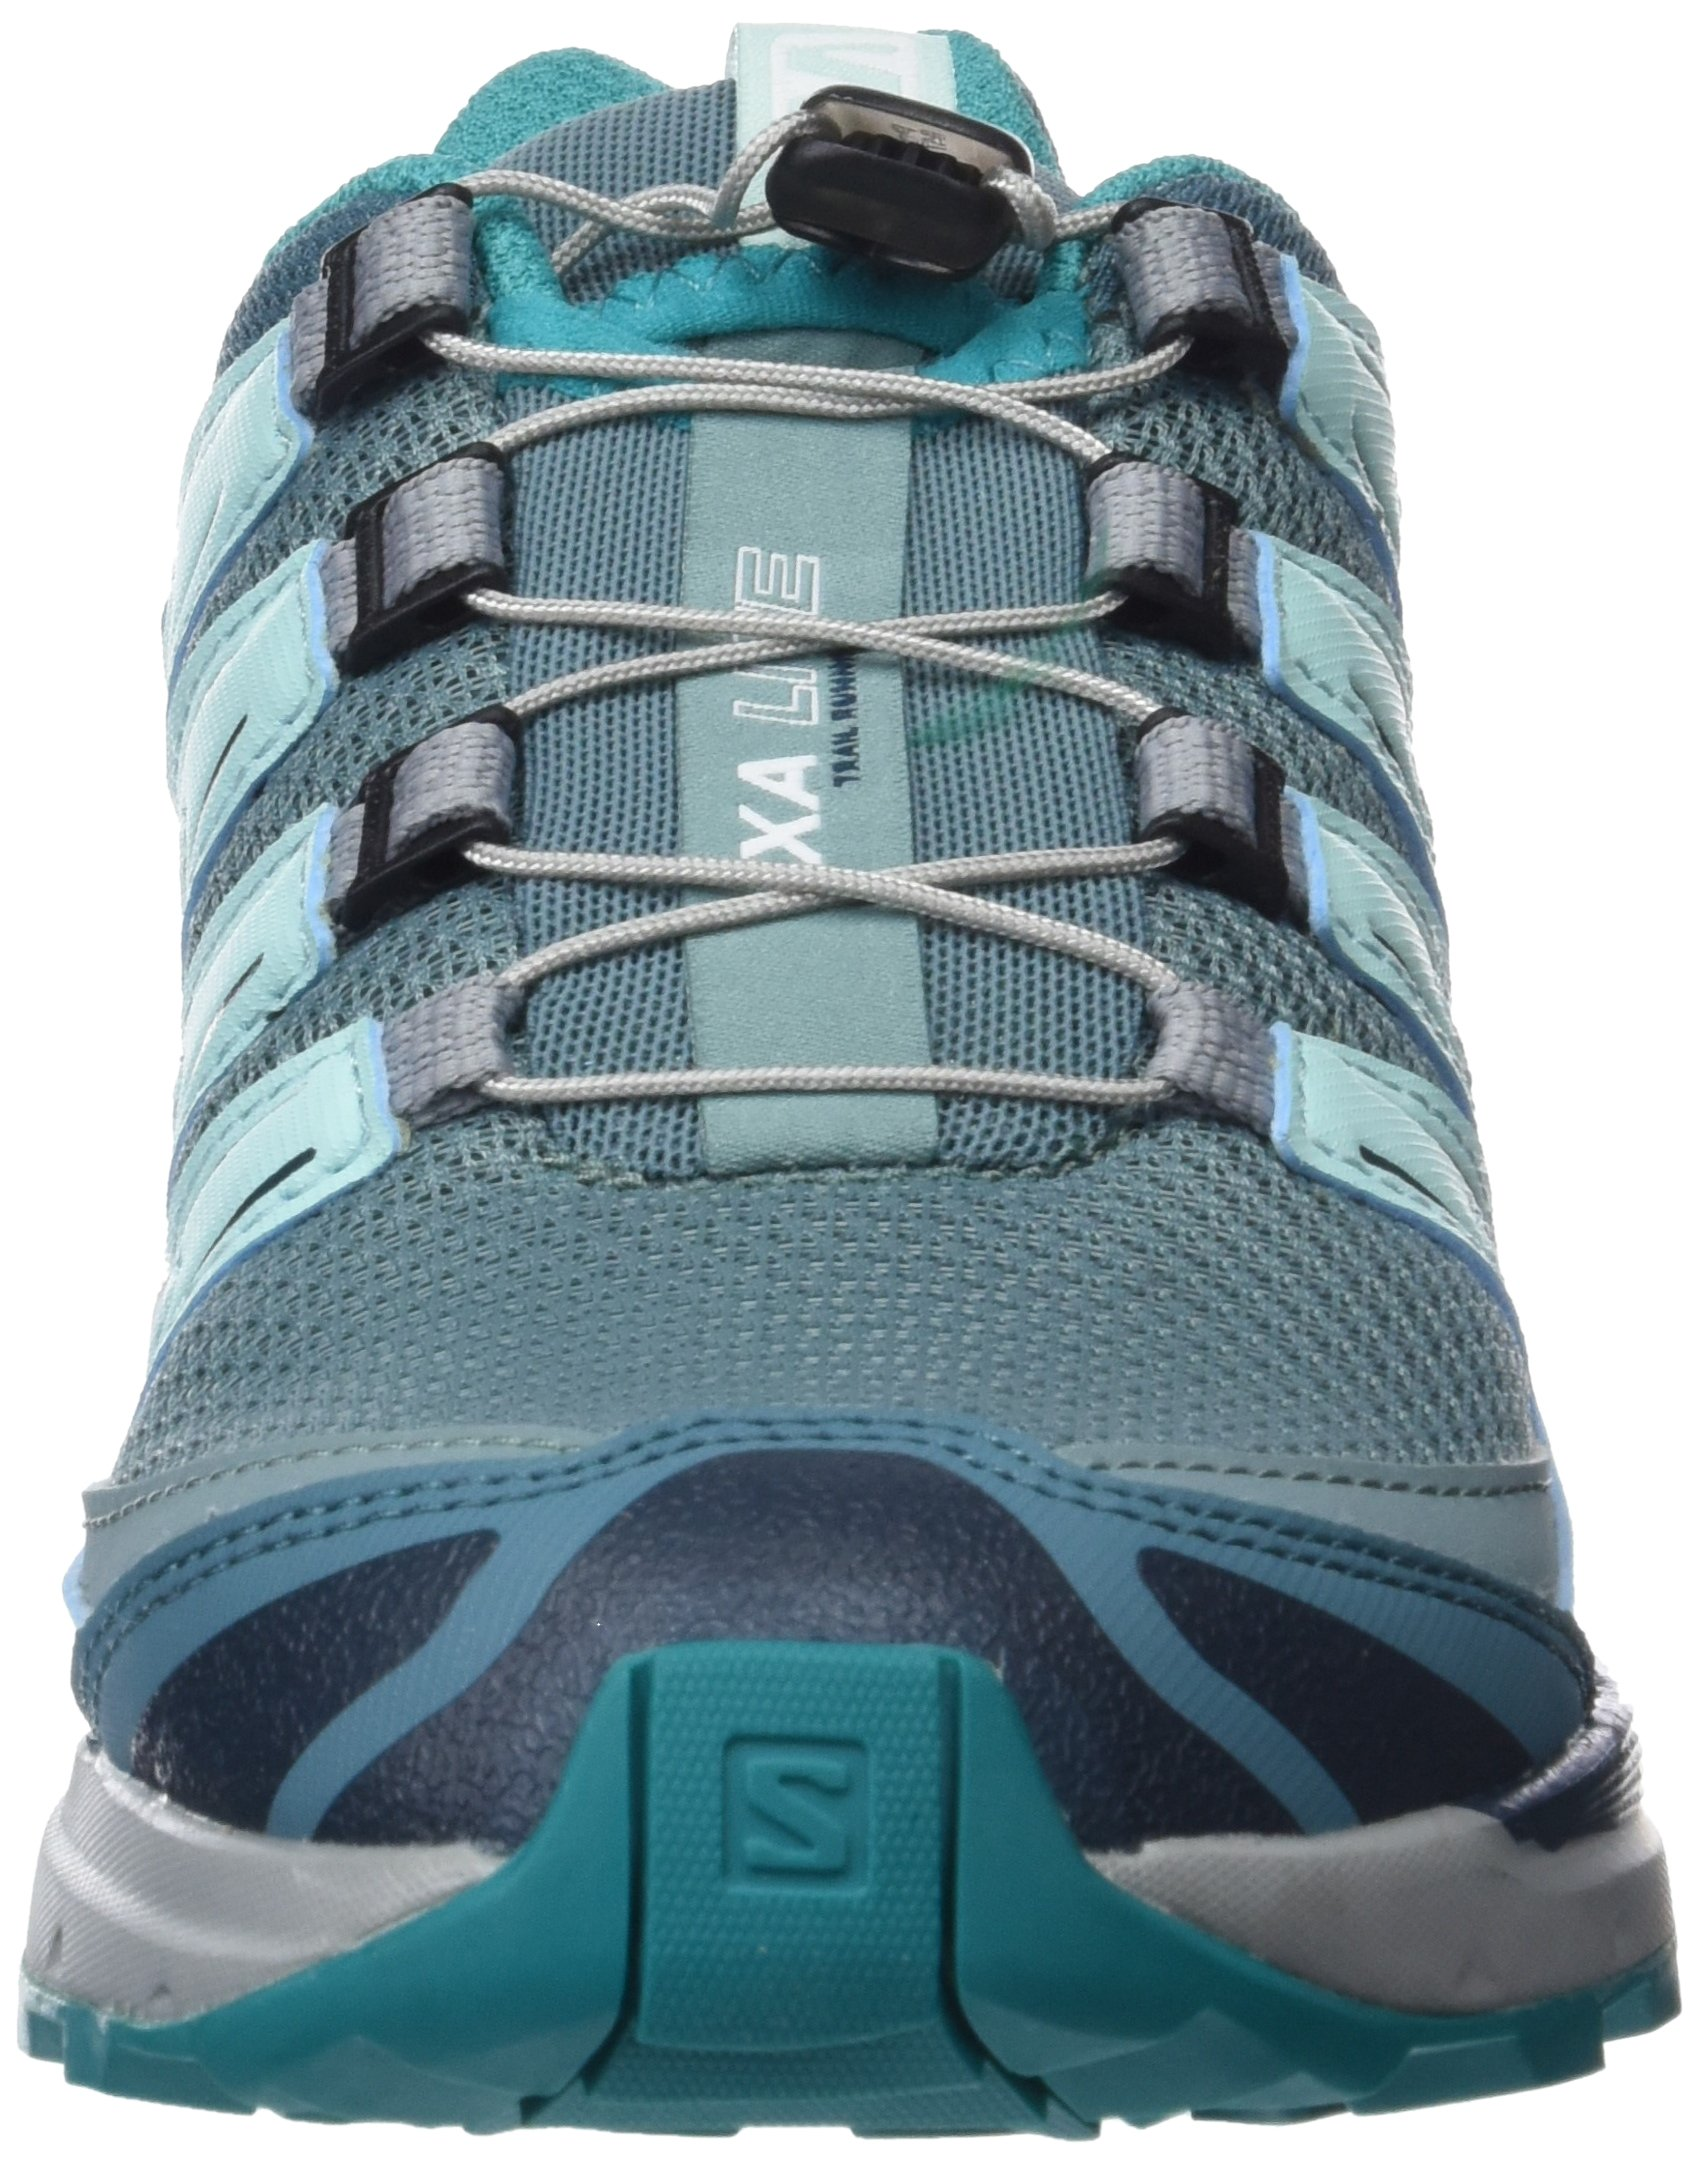 81%2B2Kj7Ed1L - SALOMON Women's Xa Lite W Trail Running Shoes